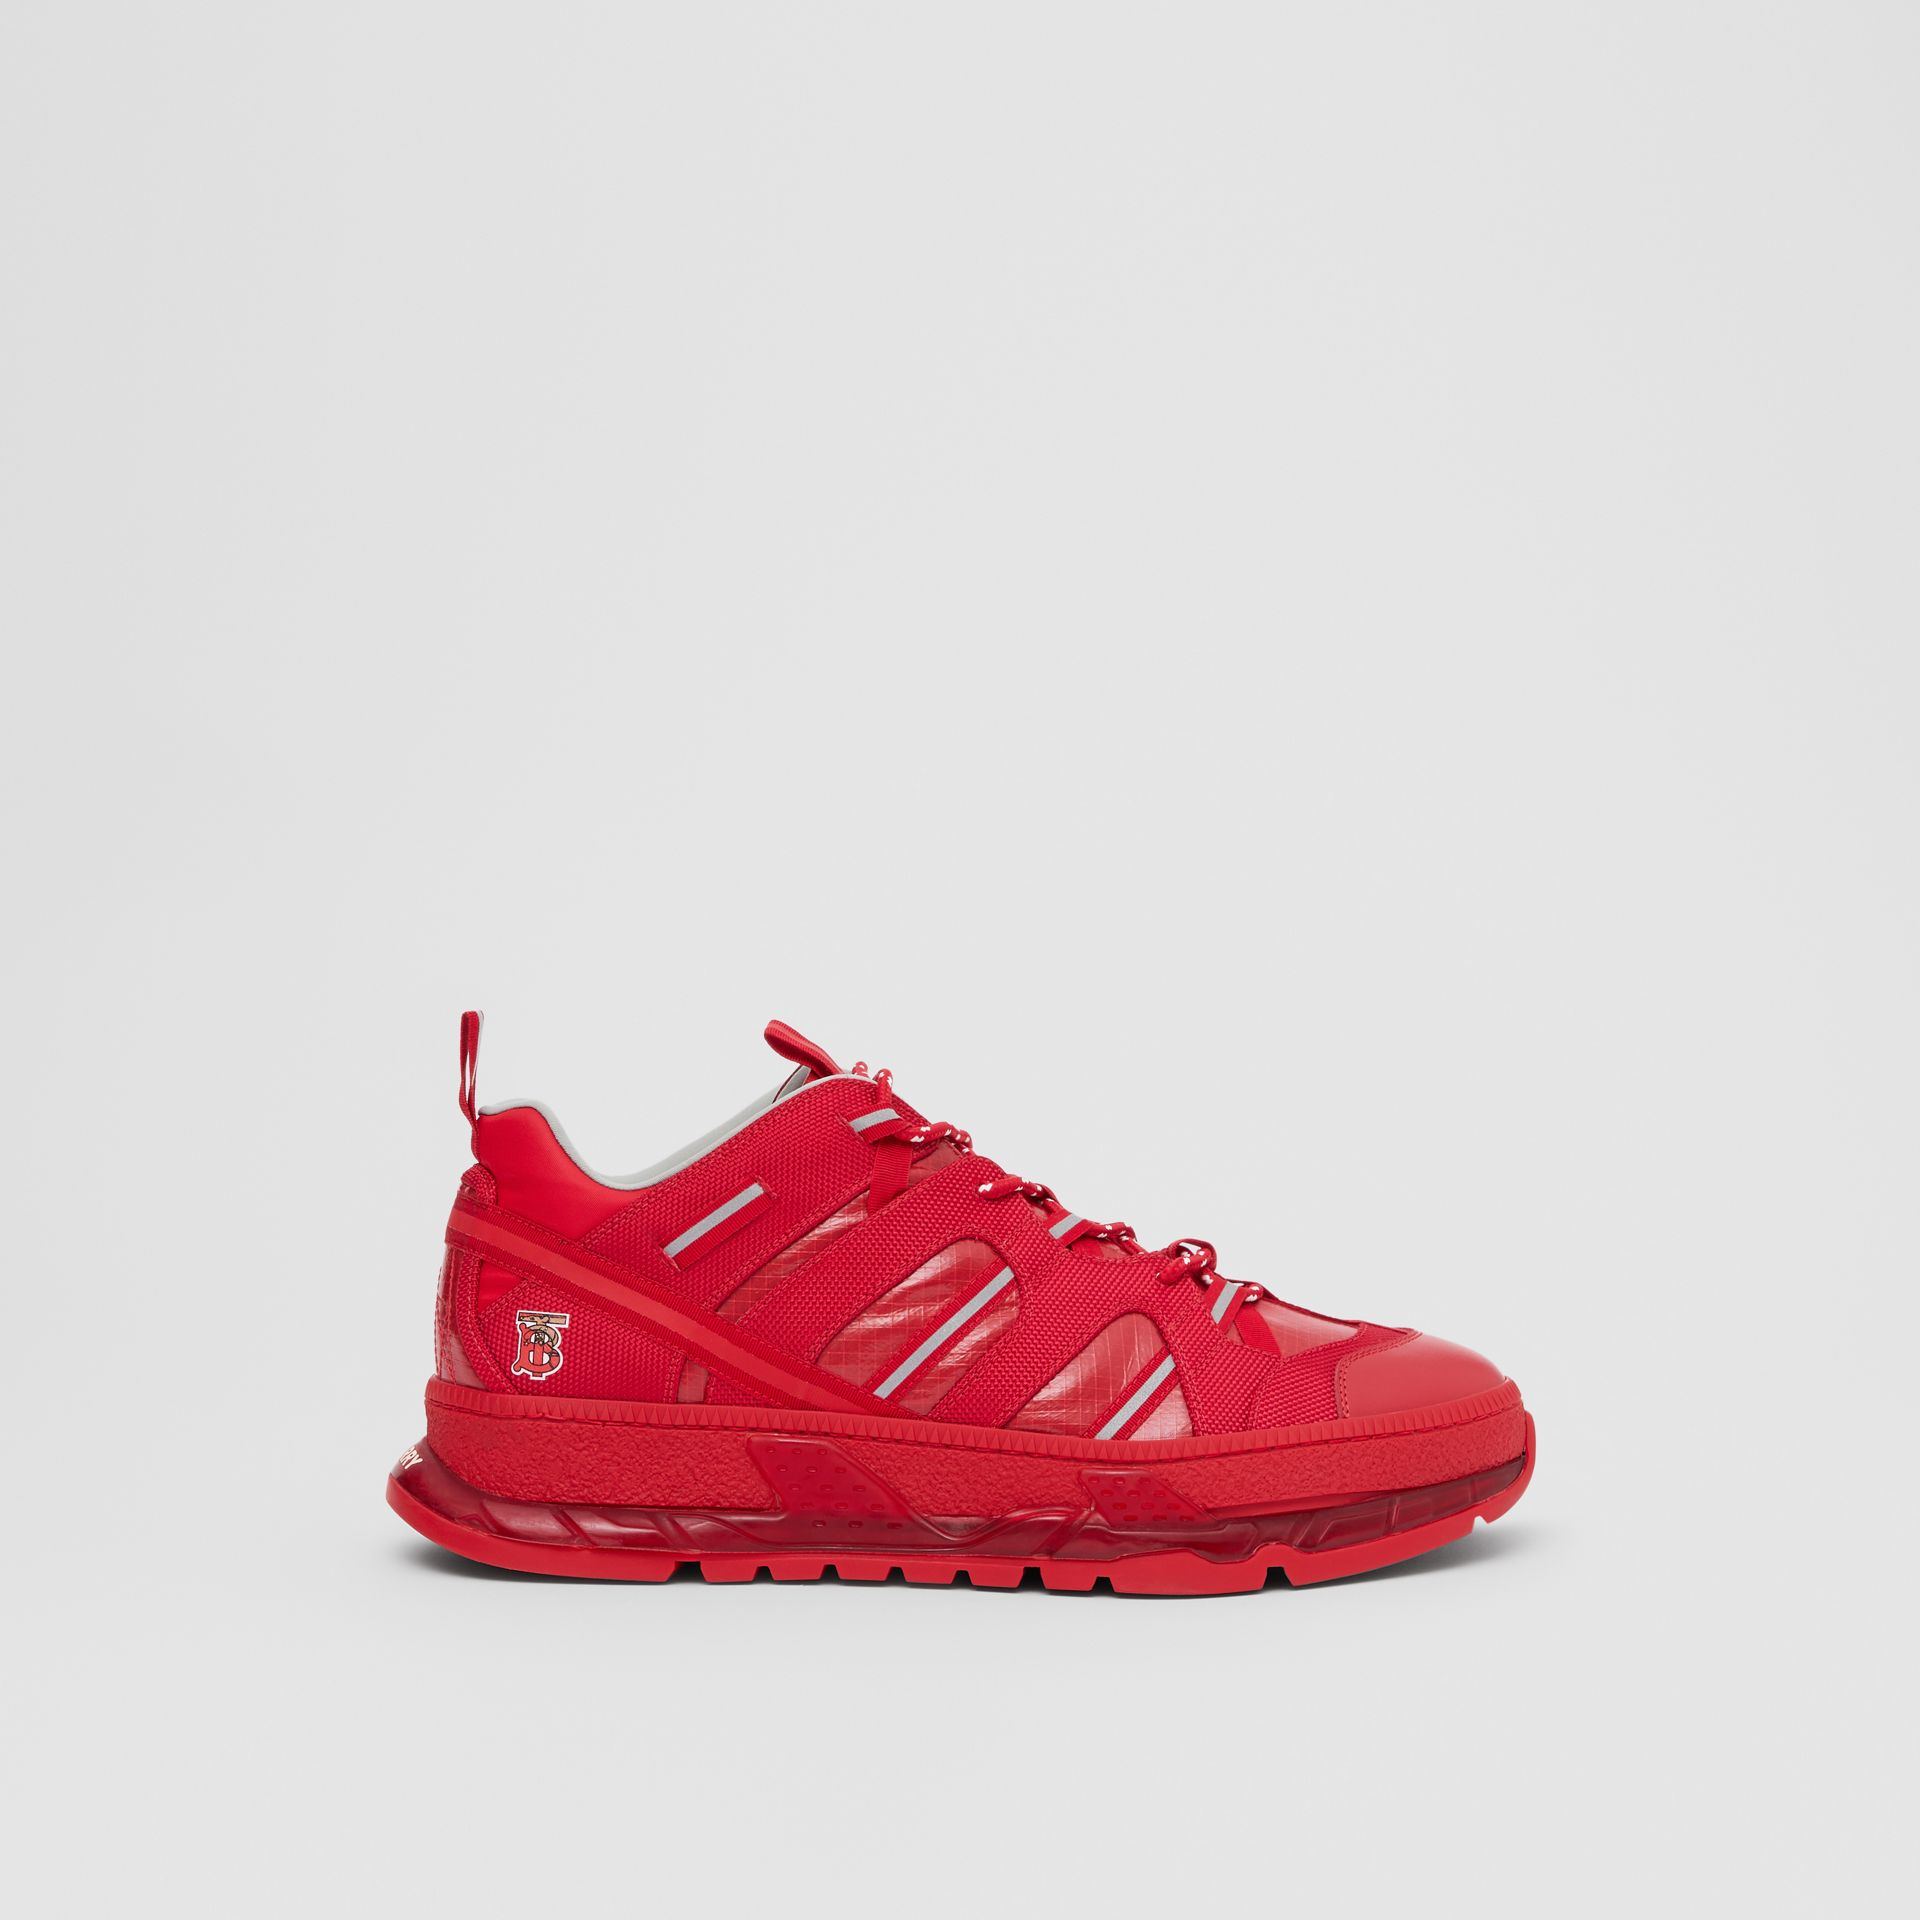 Nylon and Leather Union Sneakers in Bright Red - Women   Burberry - gallery image 2